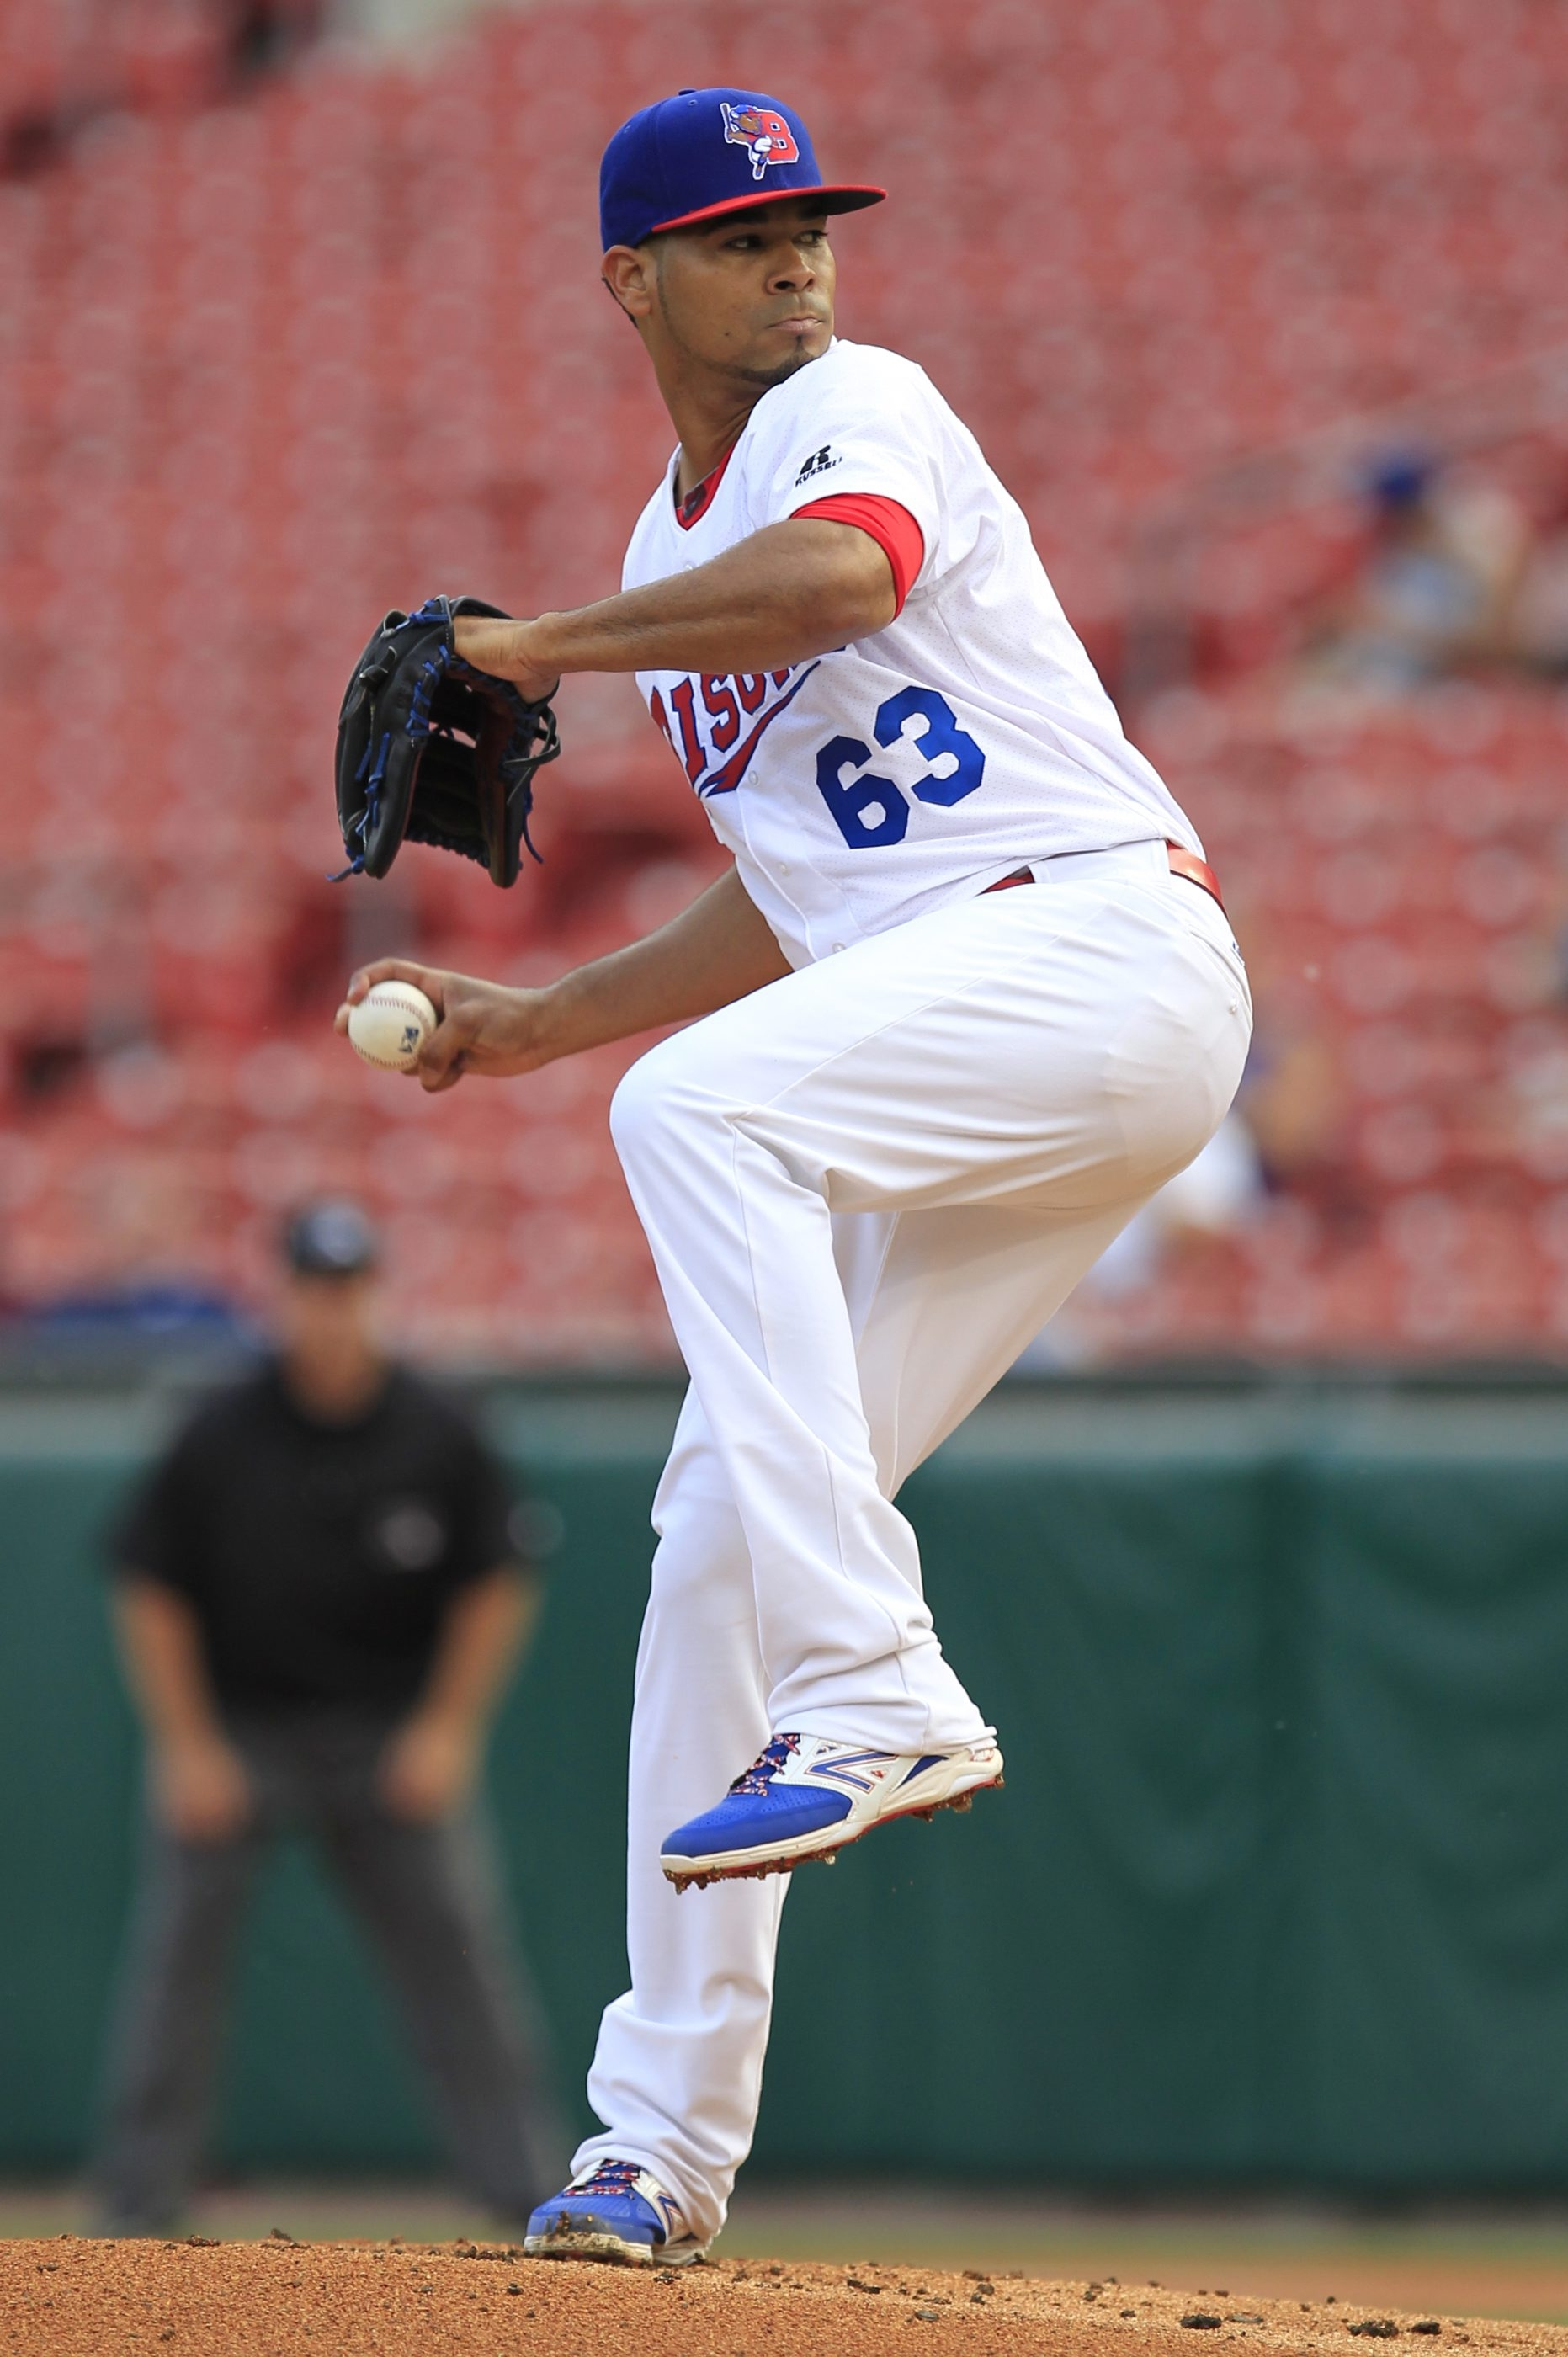 Bisons pitcher Esmil Rogers was solid in five innings of work on Monday night.